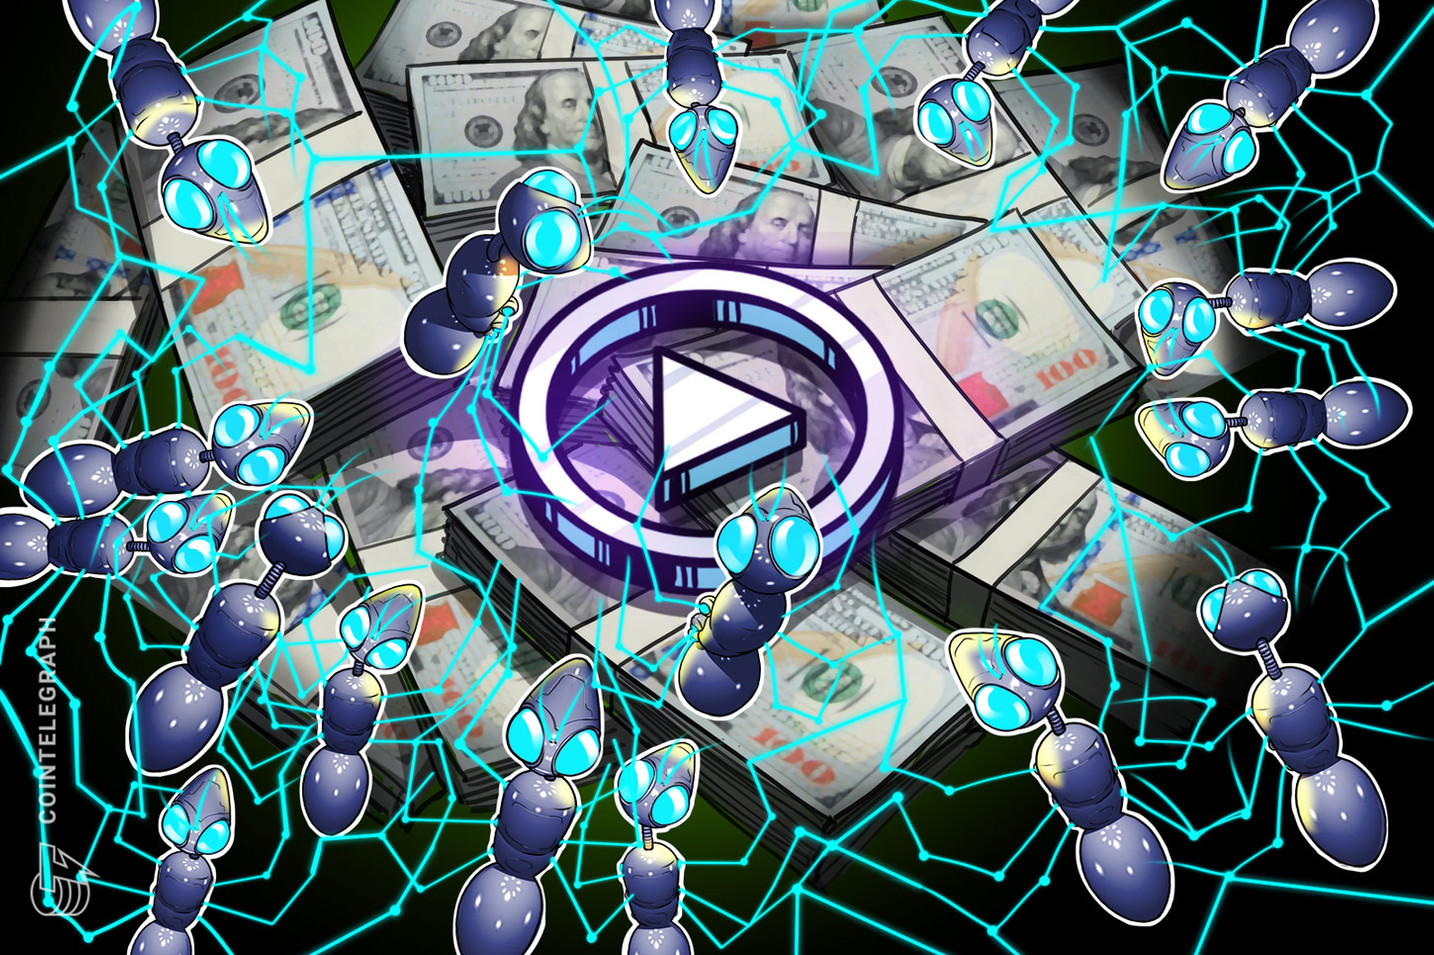 Ethereum-basierter Video-Streamingdienst sammelt 8 Mio. US-Dollar Investitionskapital ein